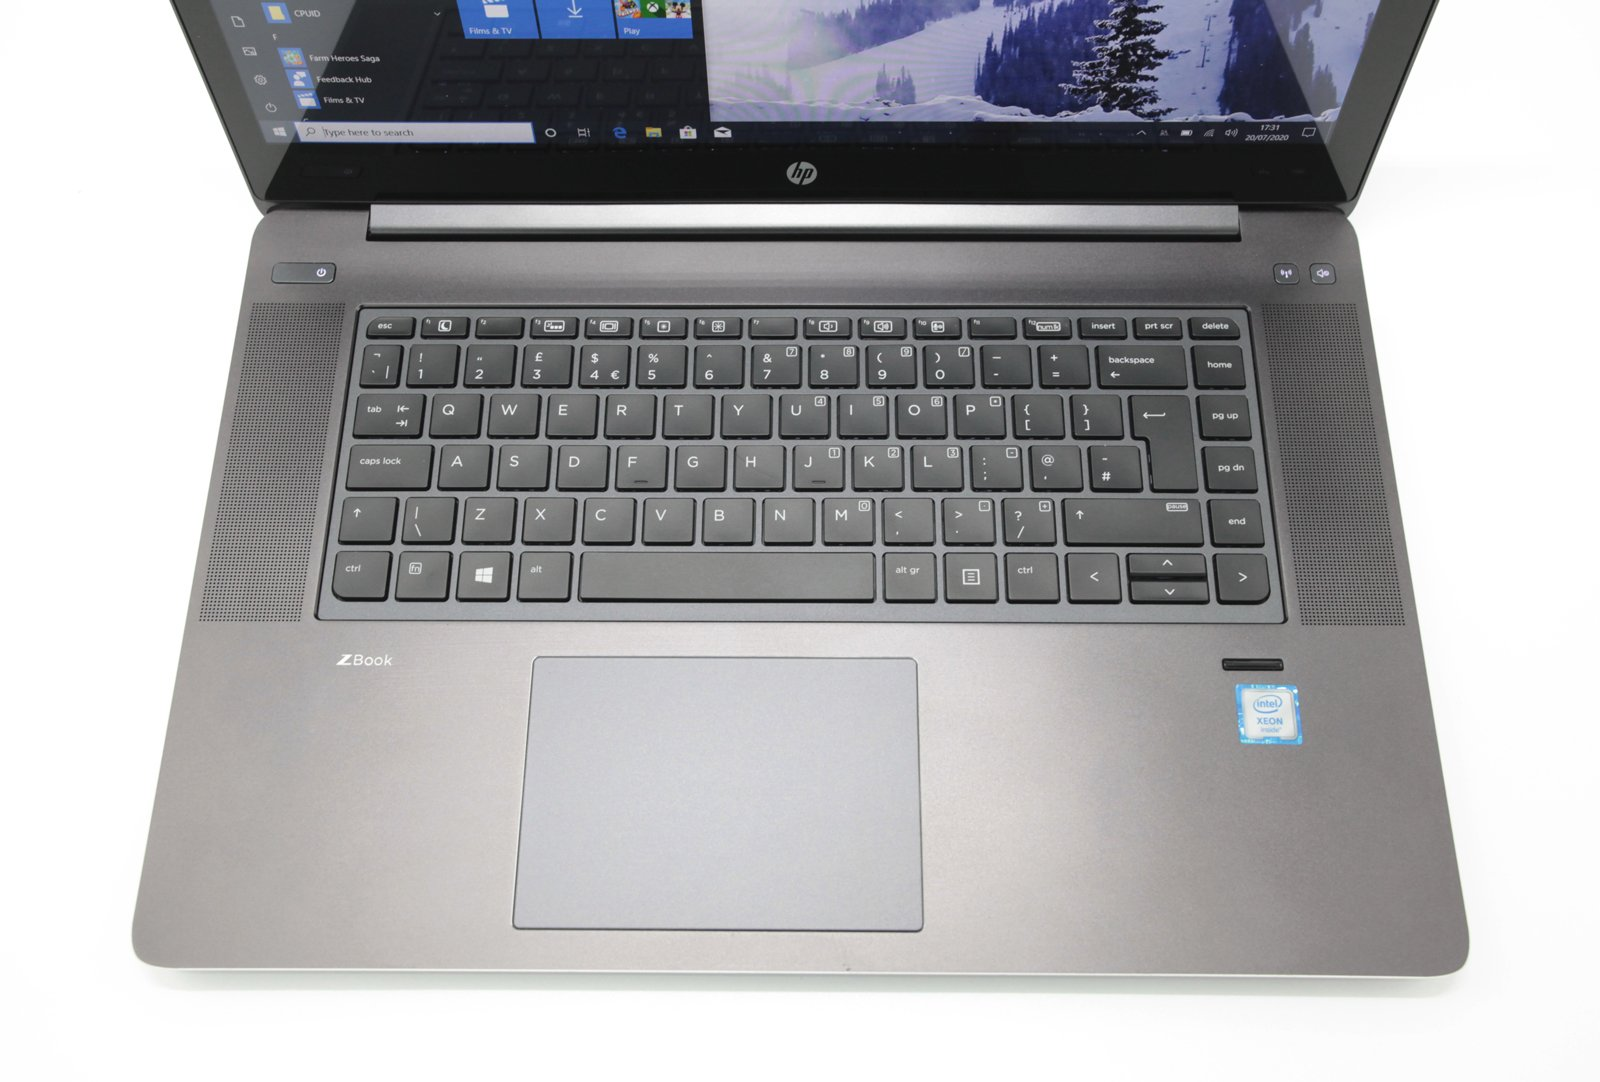 HP ZBook 15 Studio G3 Touch Laptop Xeon upto 3.7Ghz 16GB RAM, 512GB Warranty - CruiseTech